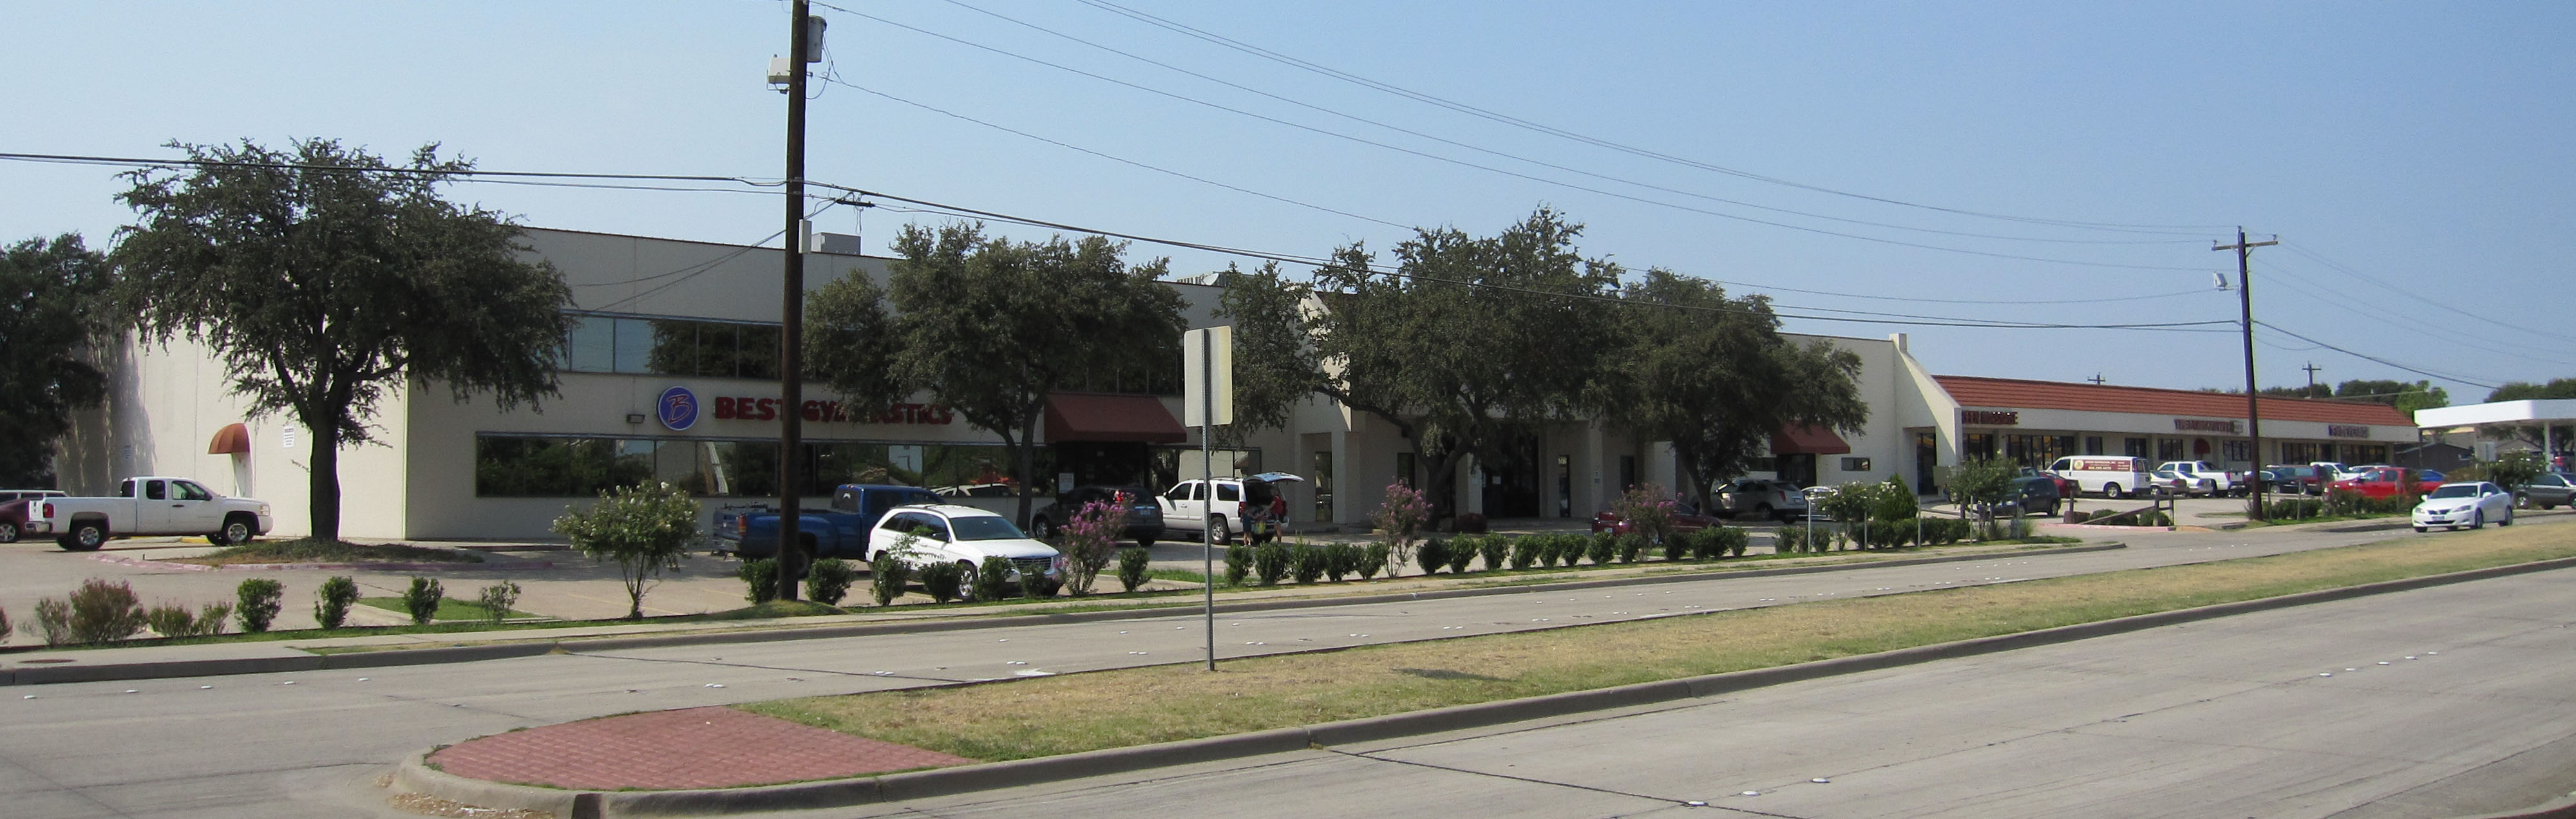 Garden Ridge Plaza - Flower Mound, Texas